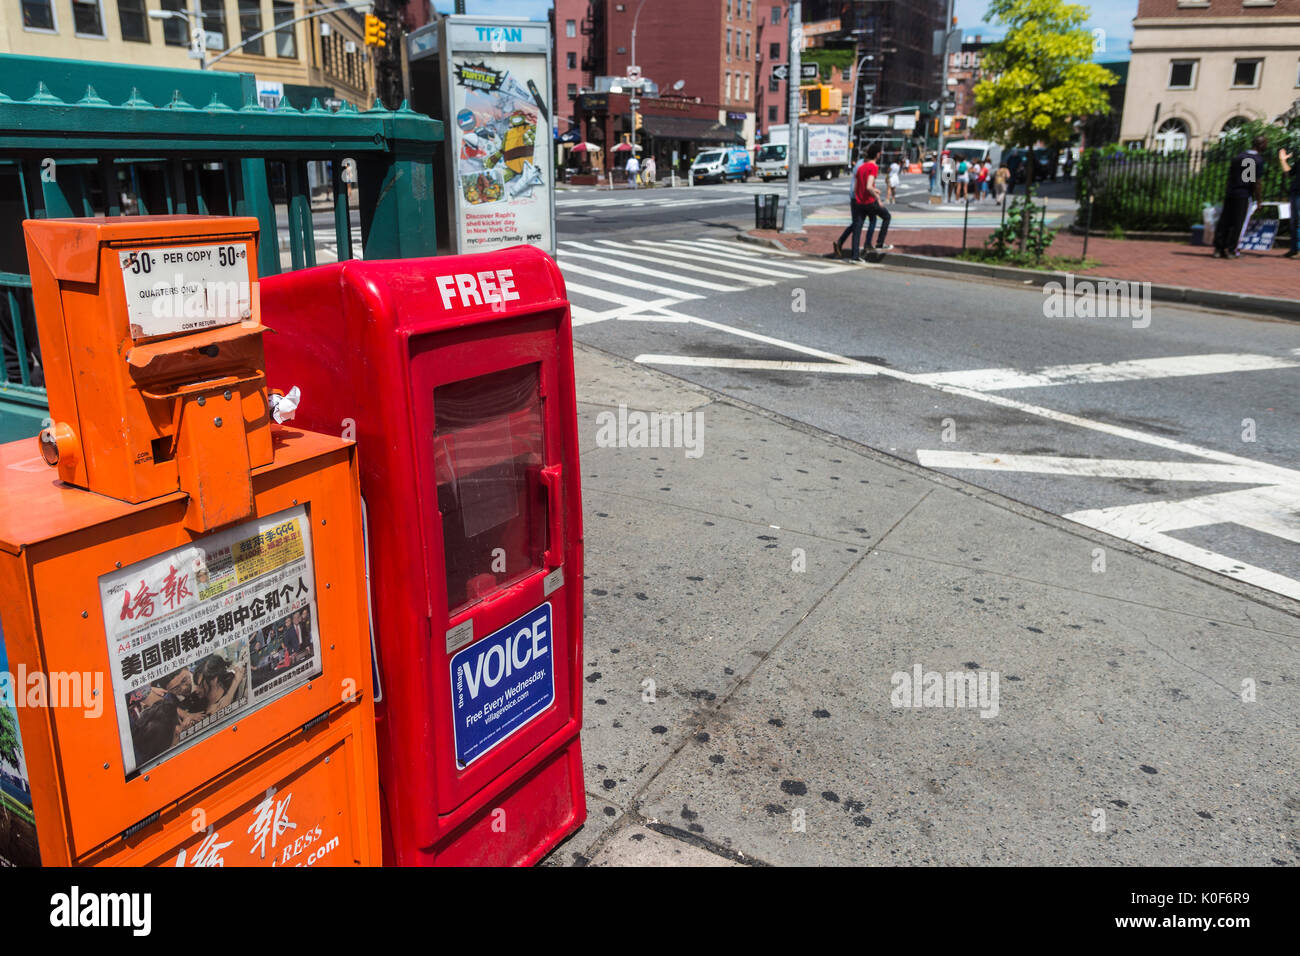 New York, NY, USA. 23rd Aug, 2017. Newspaper boxes in Sheridan Square, across the street from 61 Christopher Street, where the Village Voice opened it's first office in the early 60s. On Tuesday August 22, Peter D Barbey announced the 62 year old alternative weekly newspaper would no longer publish a print editionAn online edition will still be available via the internet CREDIT: Credit: Stacy Walsh Rosenstock/Alamy Live News - Stock Image